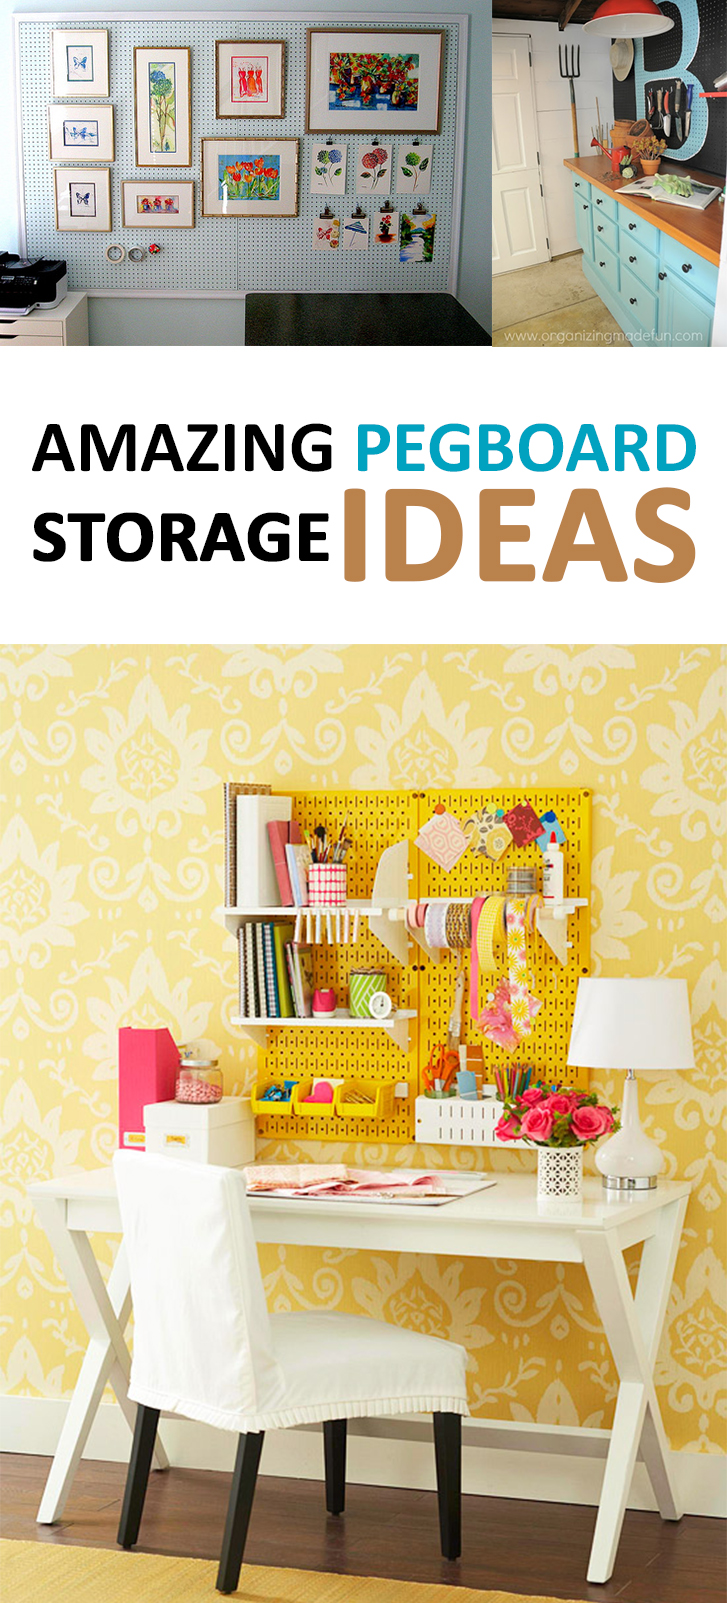 Amazing Pegboard Storage Ideas